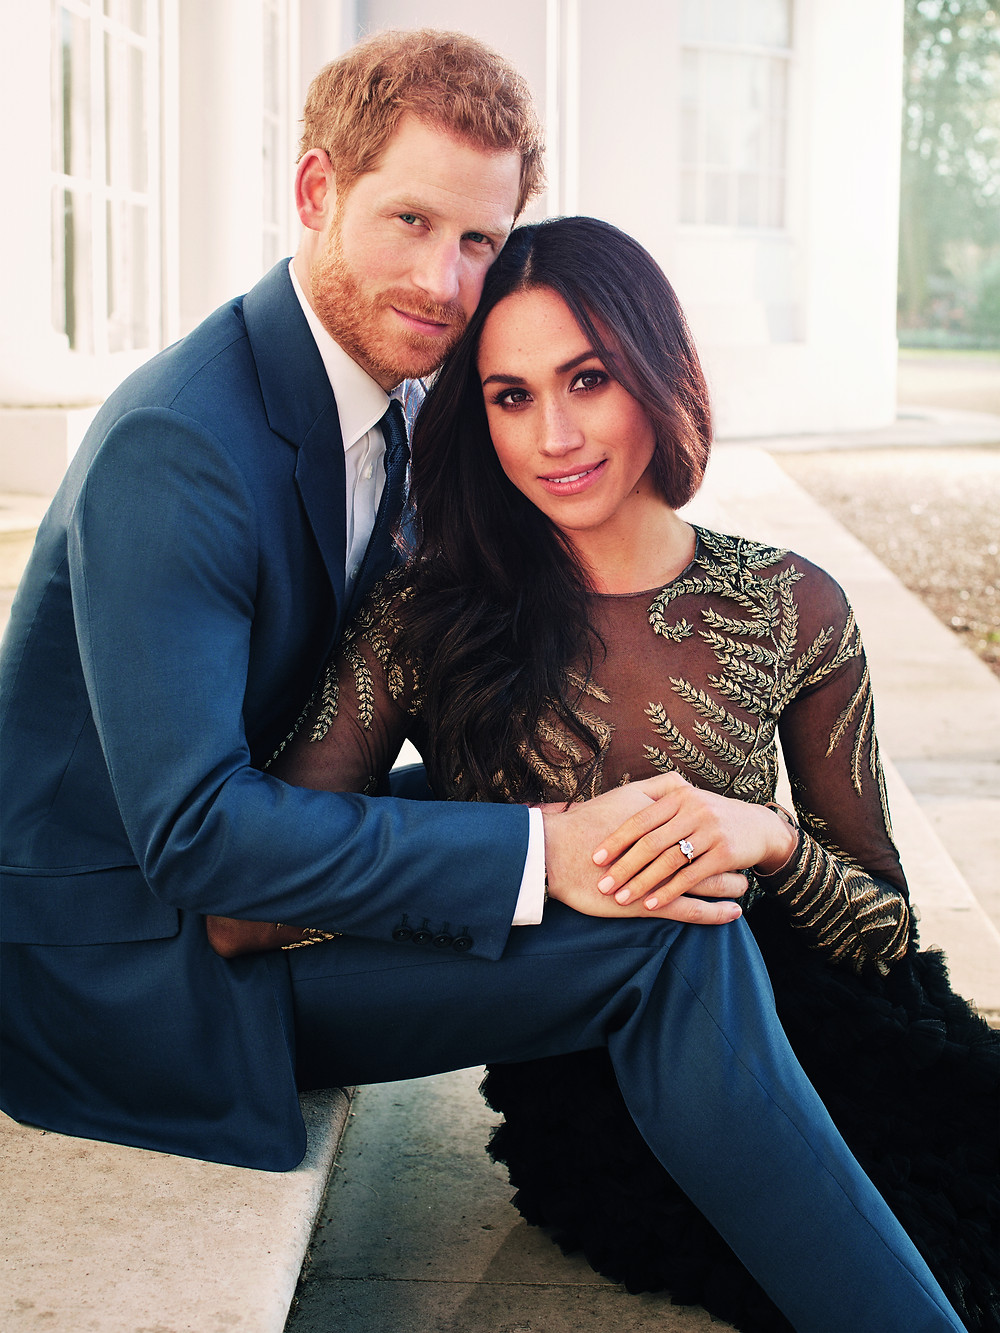 Prince Harry and Meghan Markle engagement photo formal